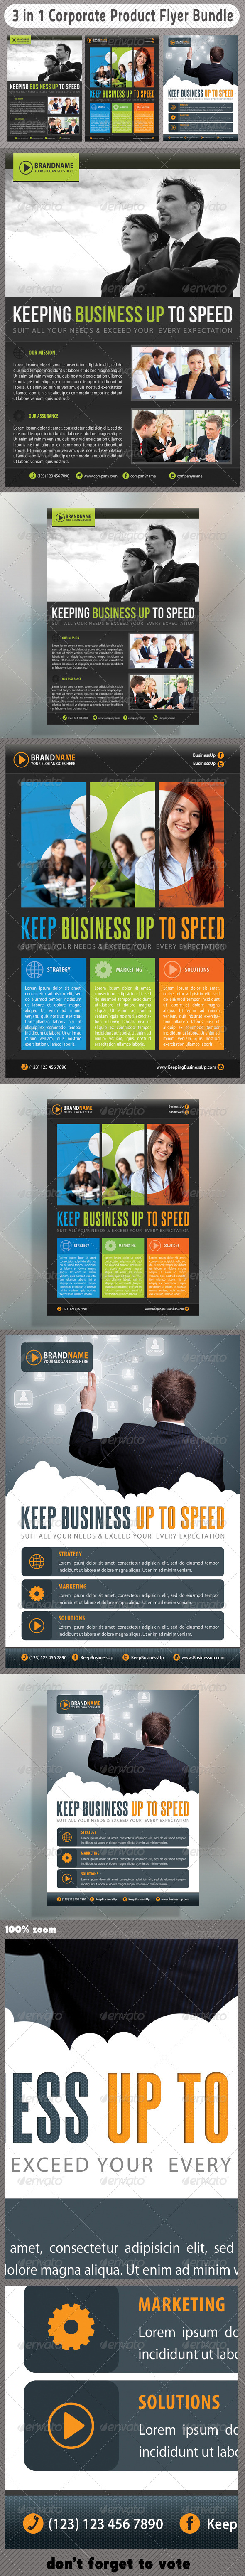 3 in 1 Corporate Flyers Bundle 05 - Corporate Flyers